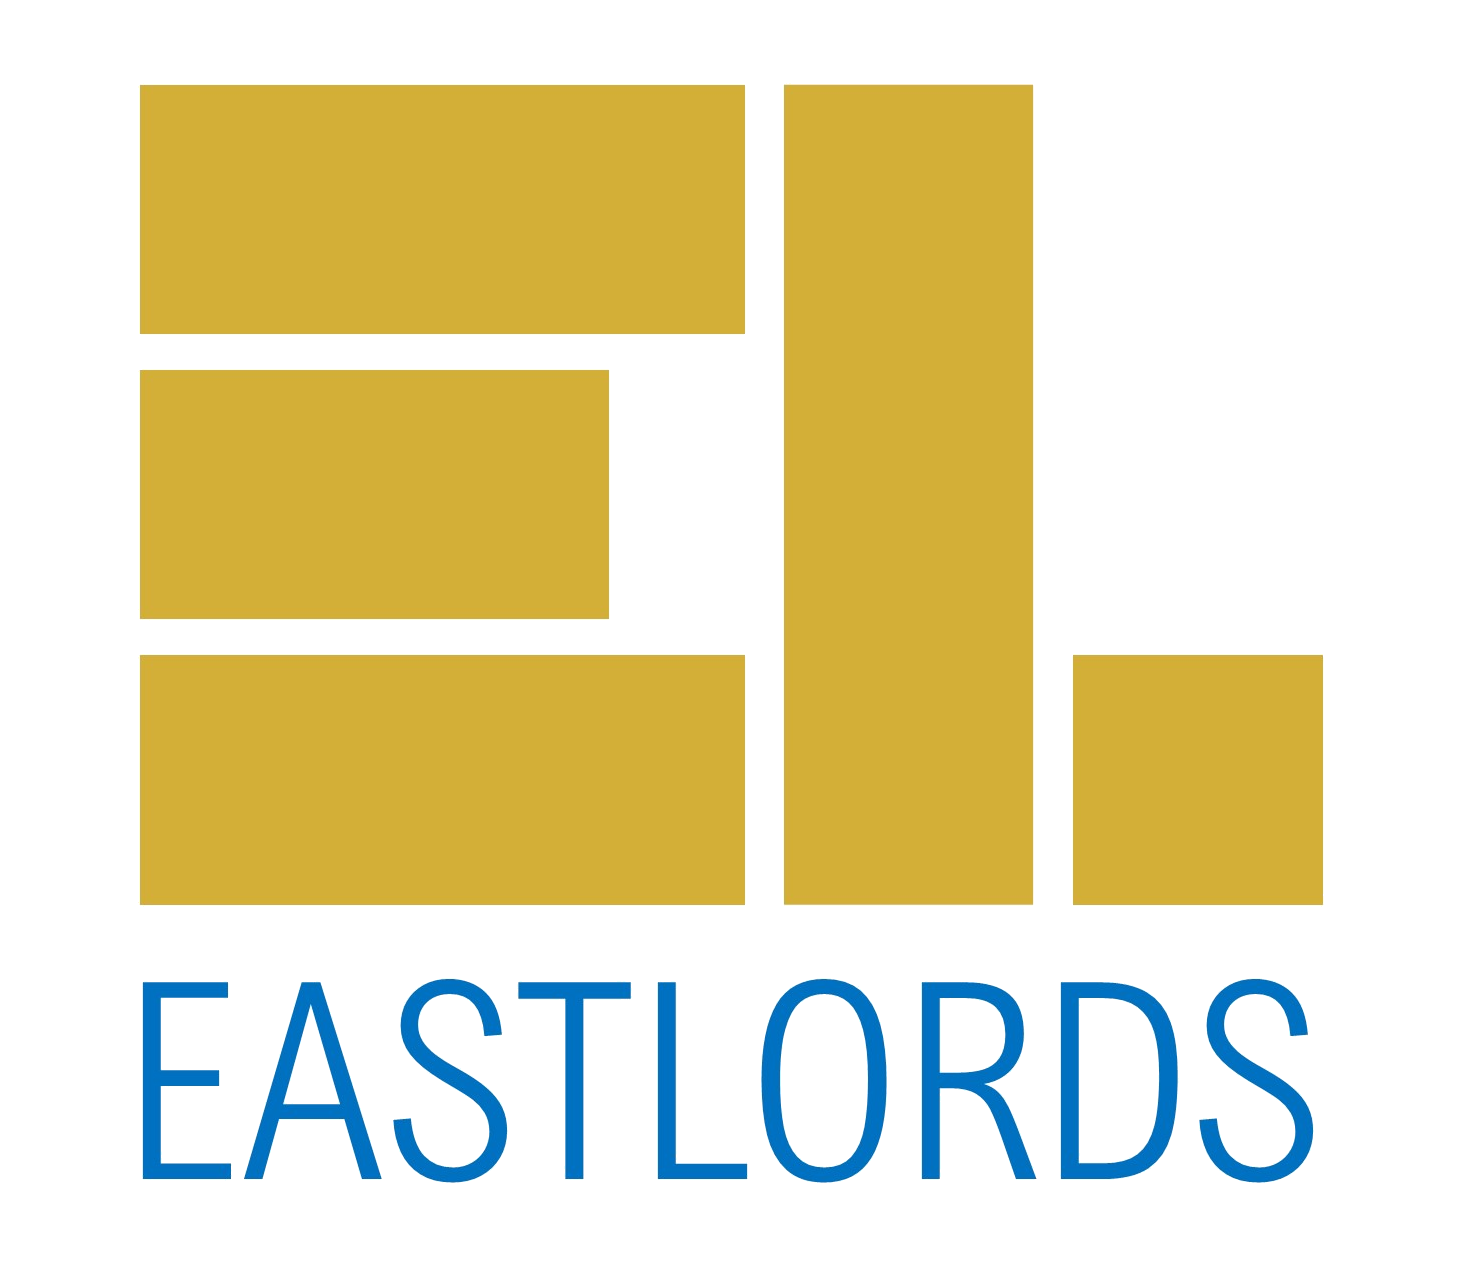 Eastlords & Rictar Holdings